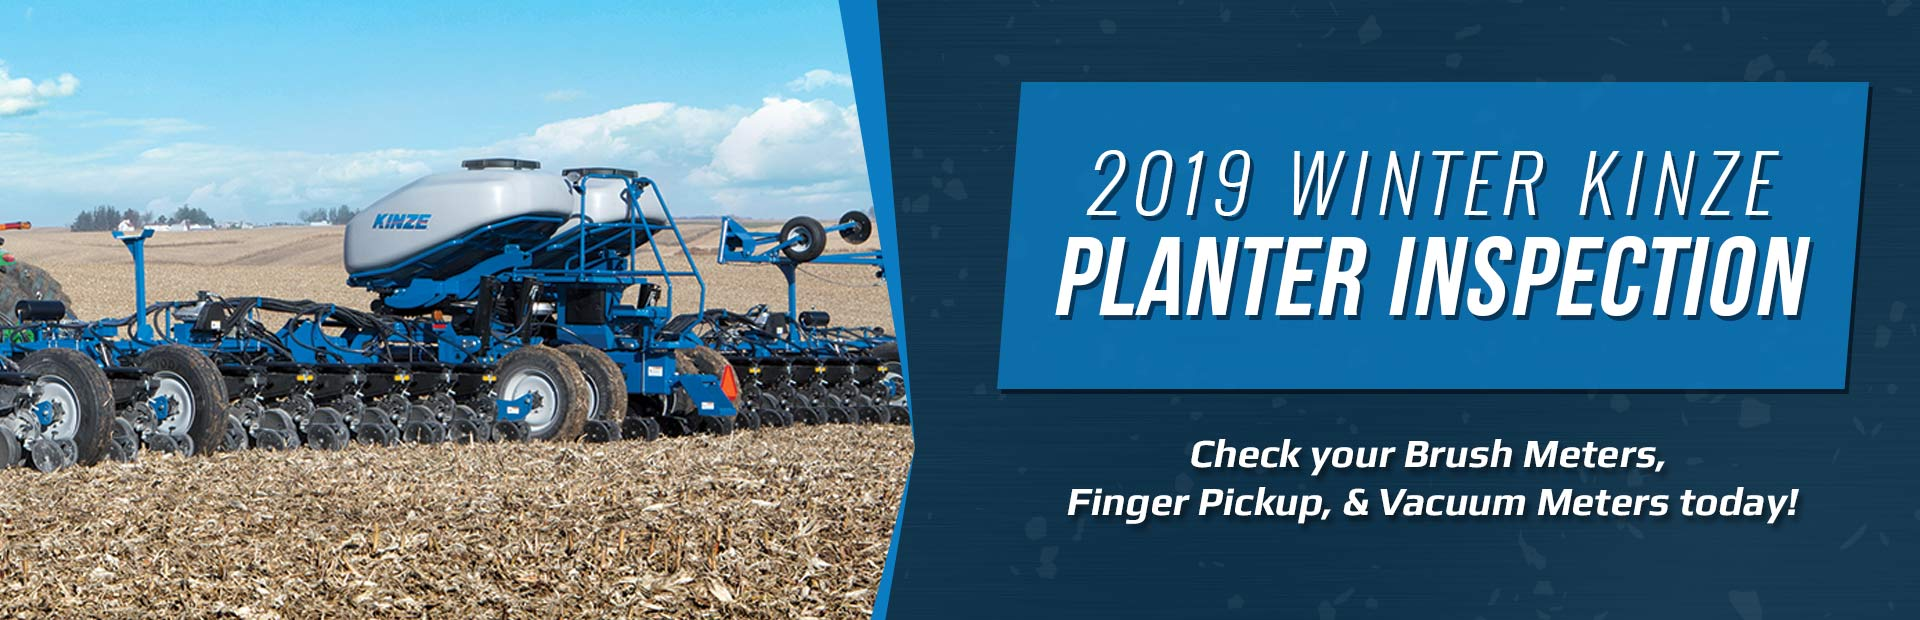 2019 Winter Kinze Planter Inspection: Check your brush meters, finger pickup, & vacuum meters today!